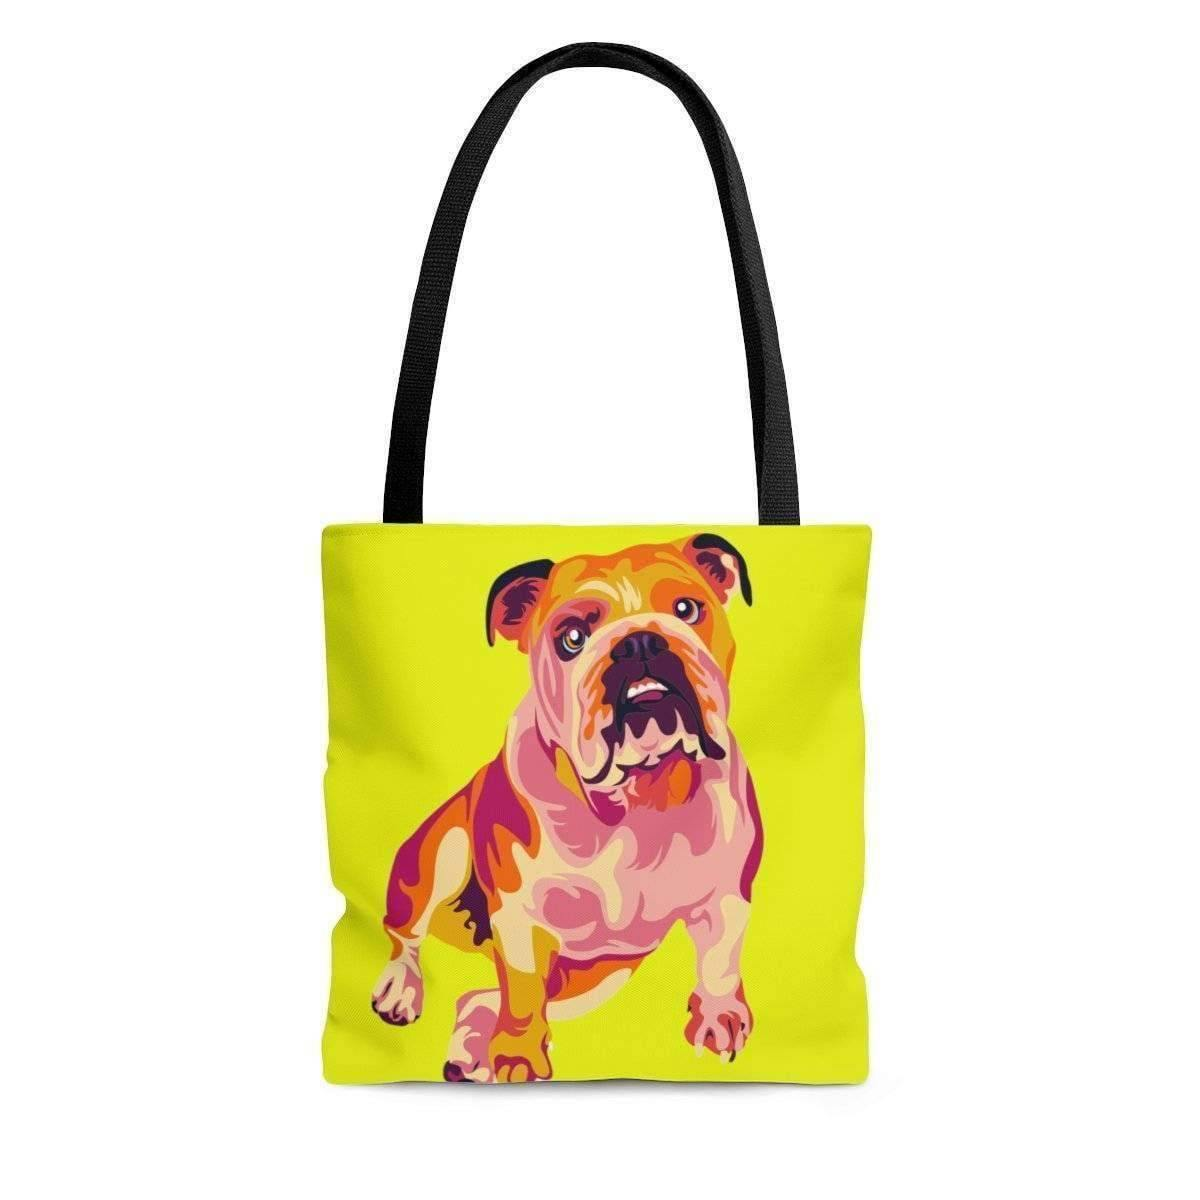 SquishyFacedCrew™ Custom Pop Art Tote Bag